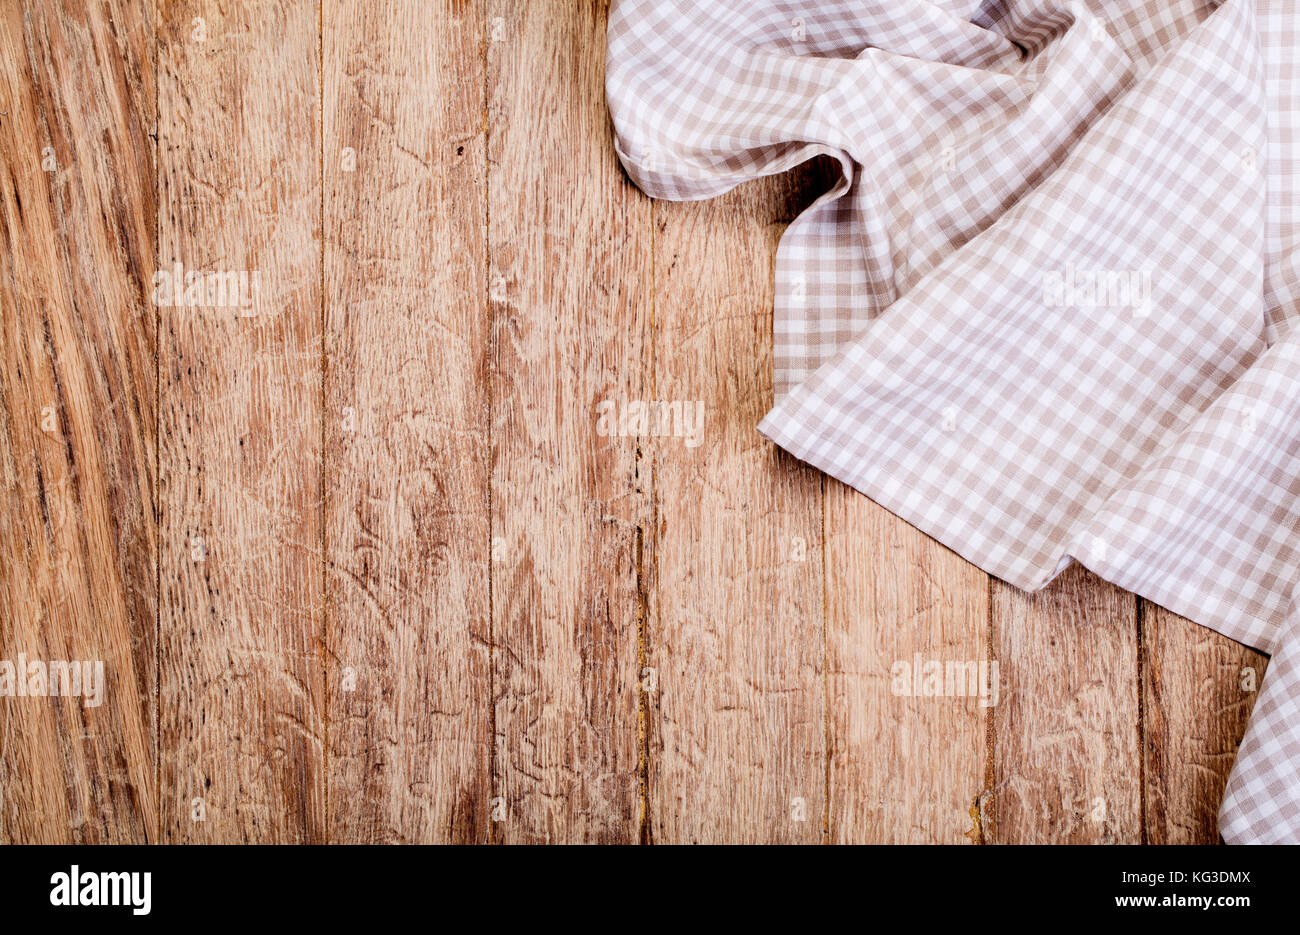 checkered tablecloth on wooden table background Stock Photo